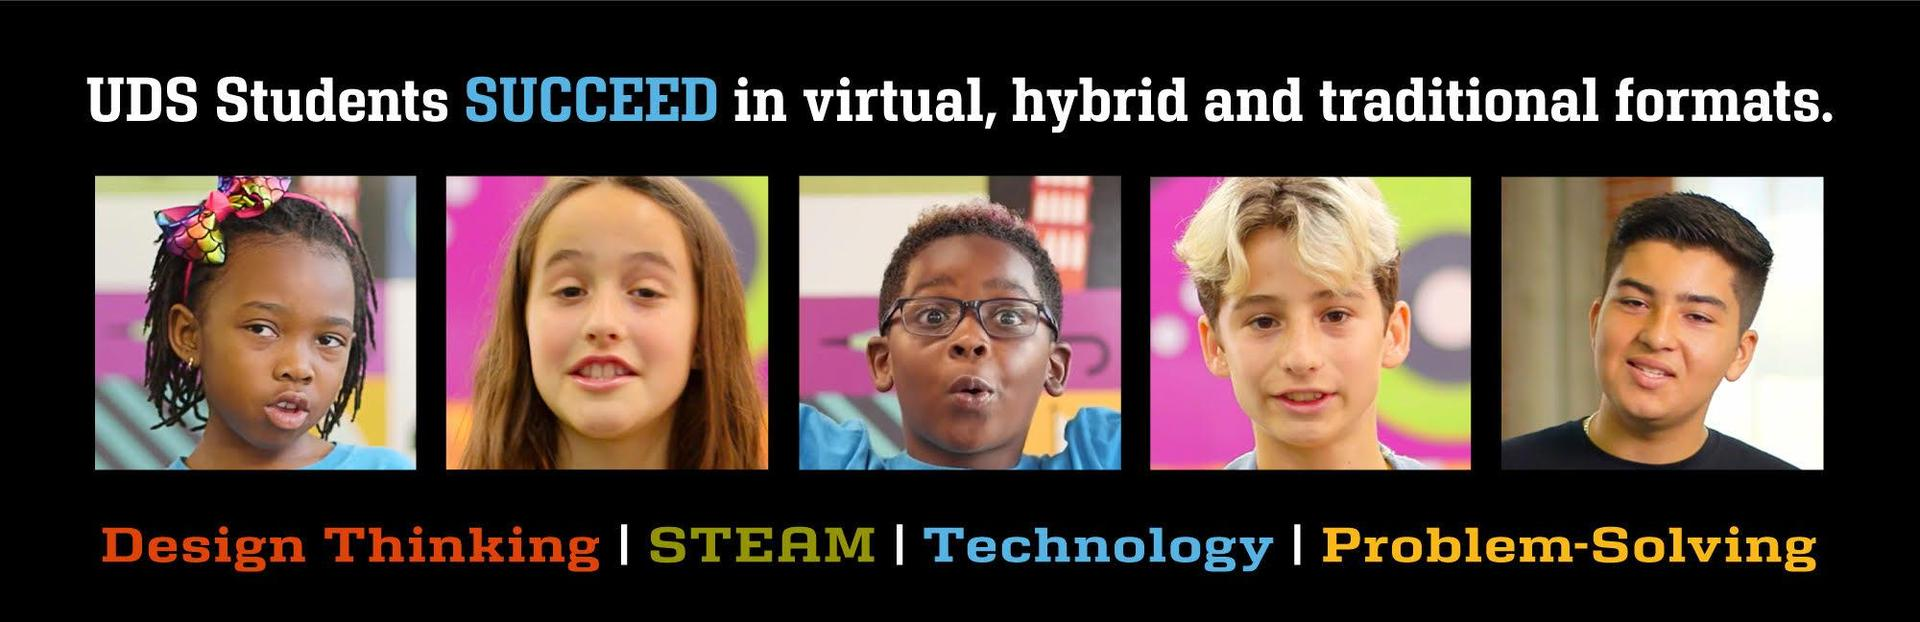 Urban Discovery Students SUCCEED in virtual, hybrid and traditional environments.